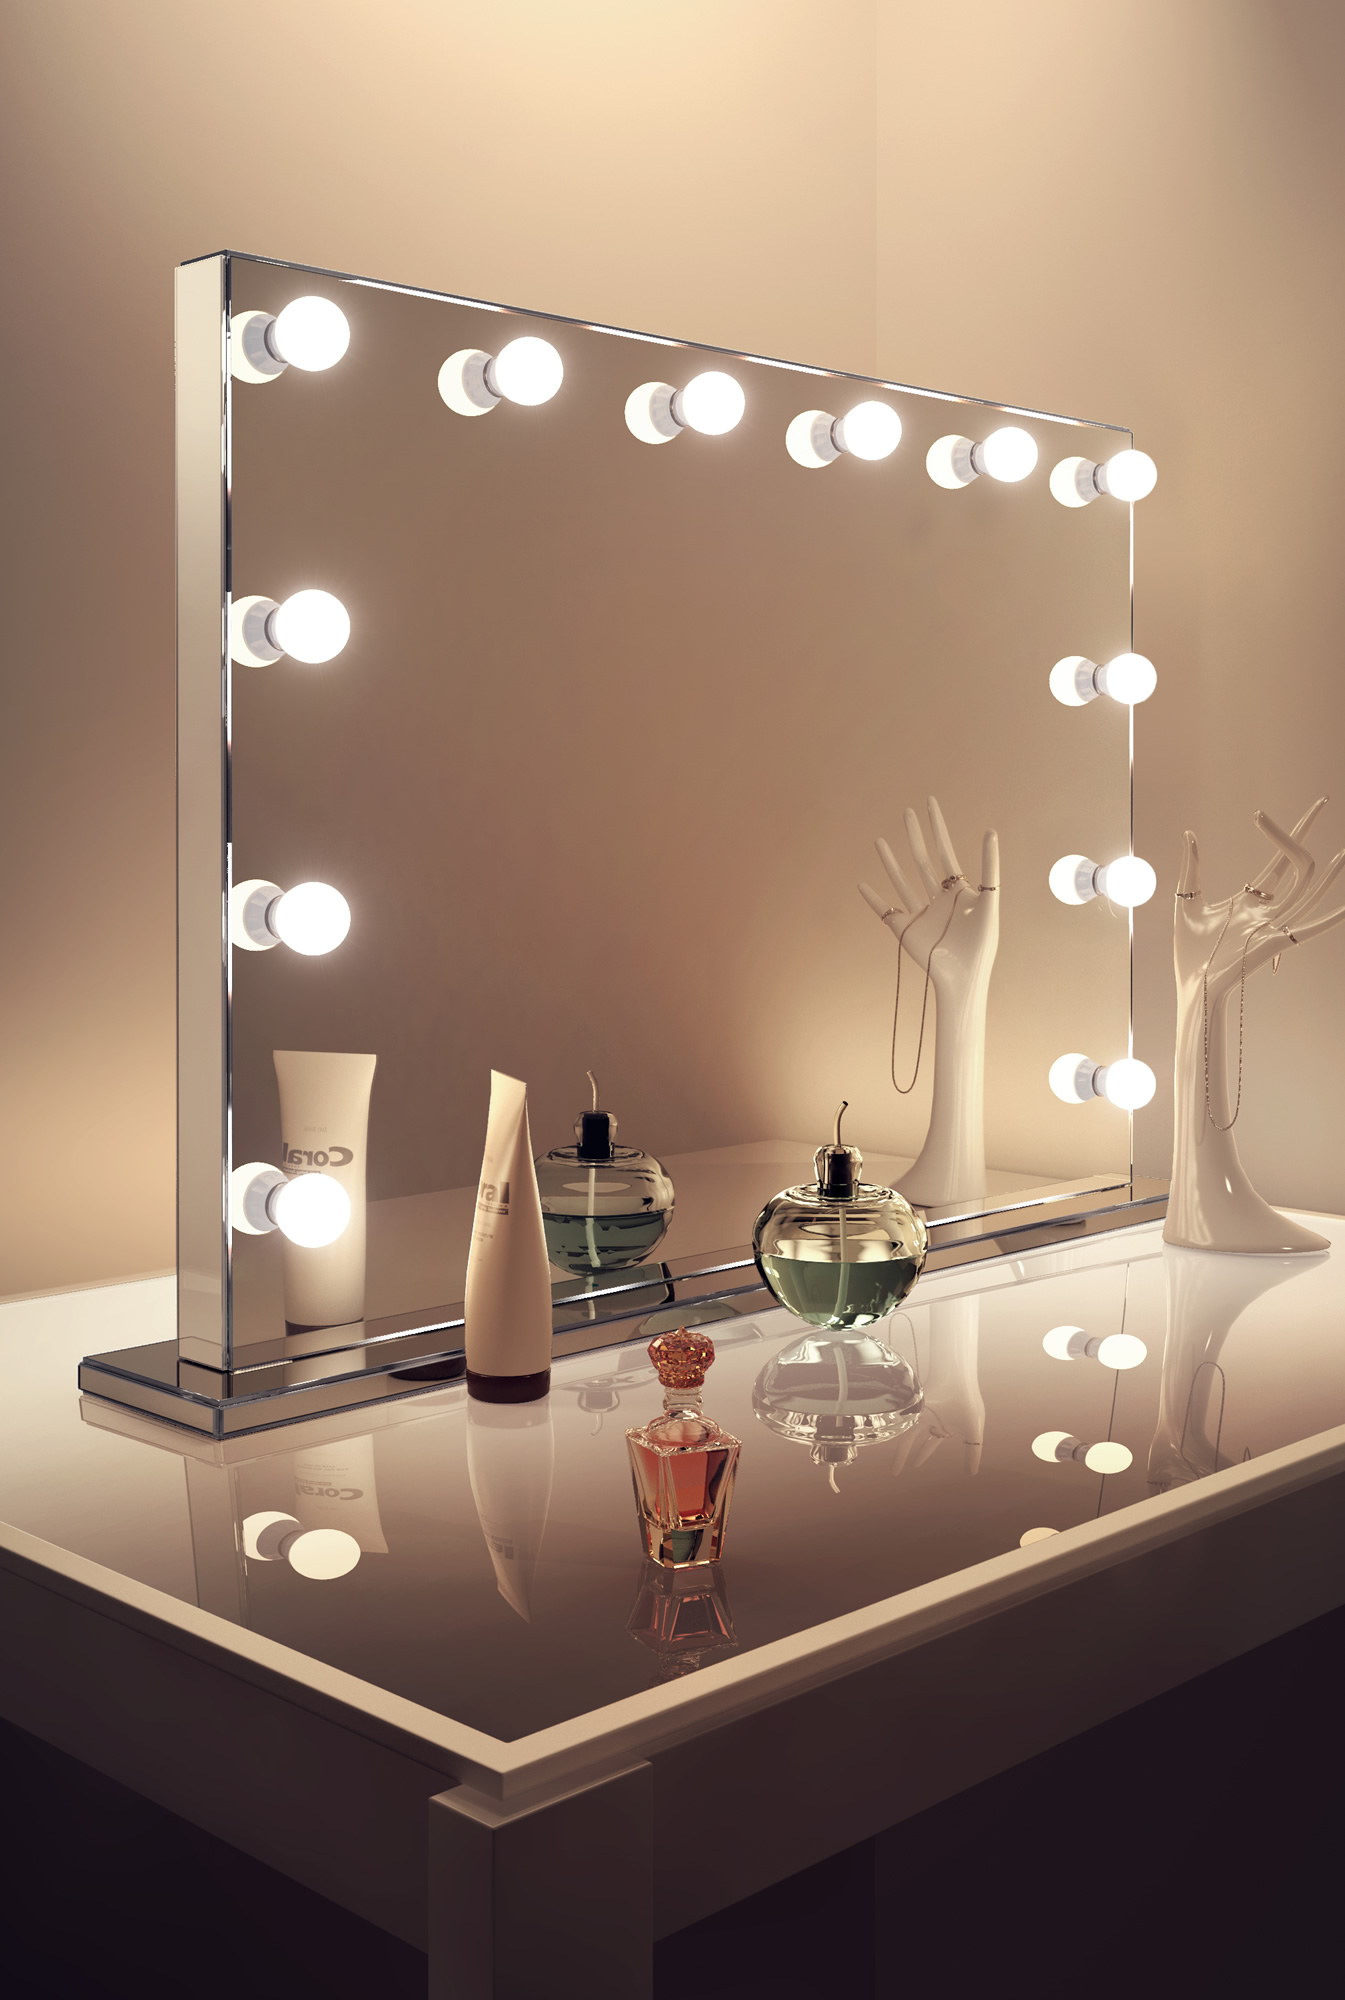 details about mirror finish hollywood makeup mirror with warm white. Black Bedroom Furniture Sets. Home Design Ideas